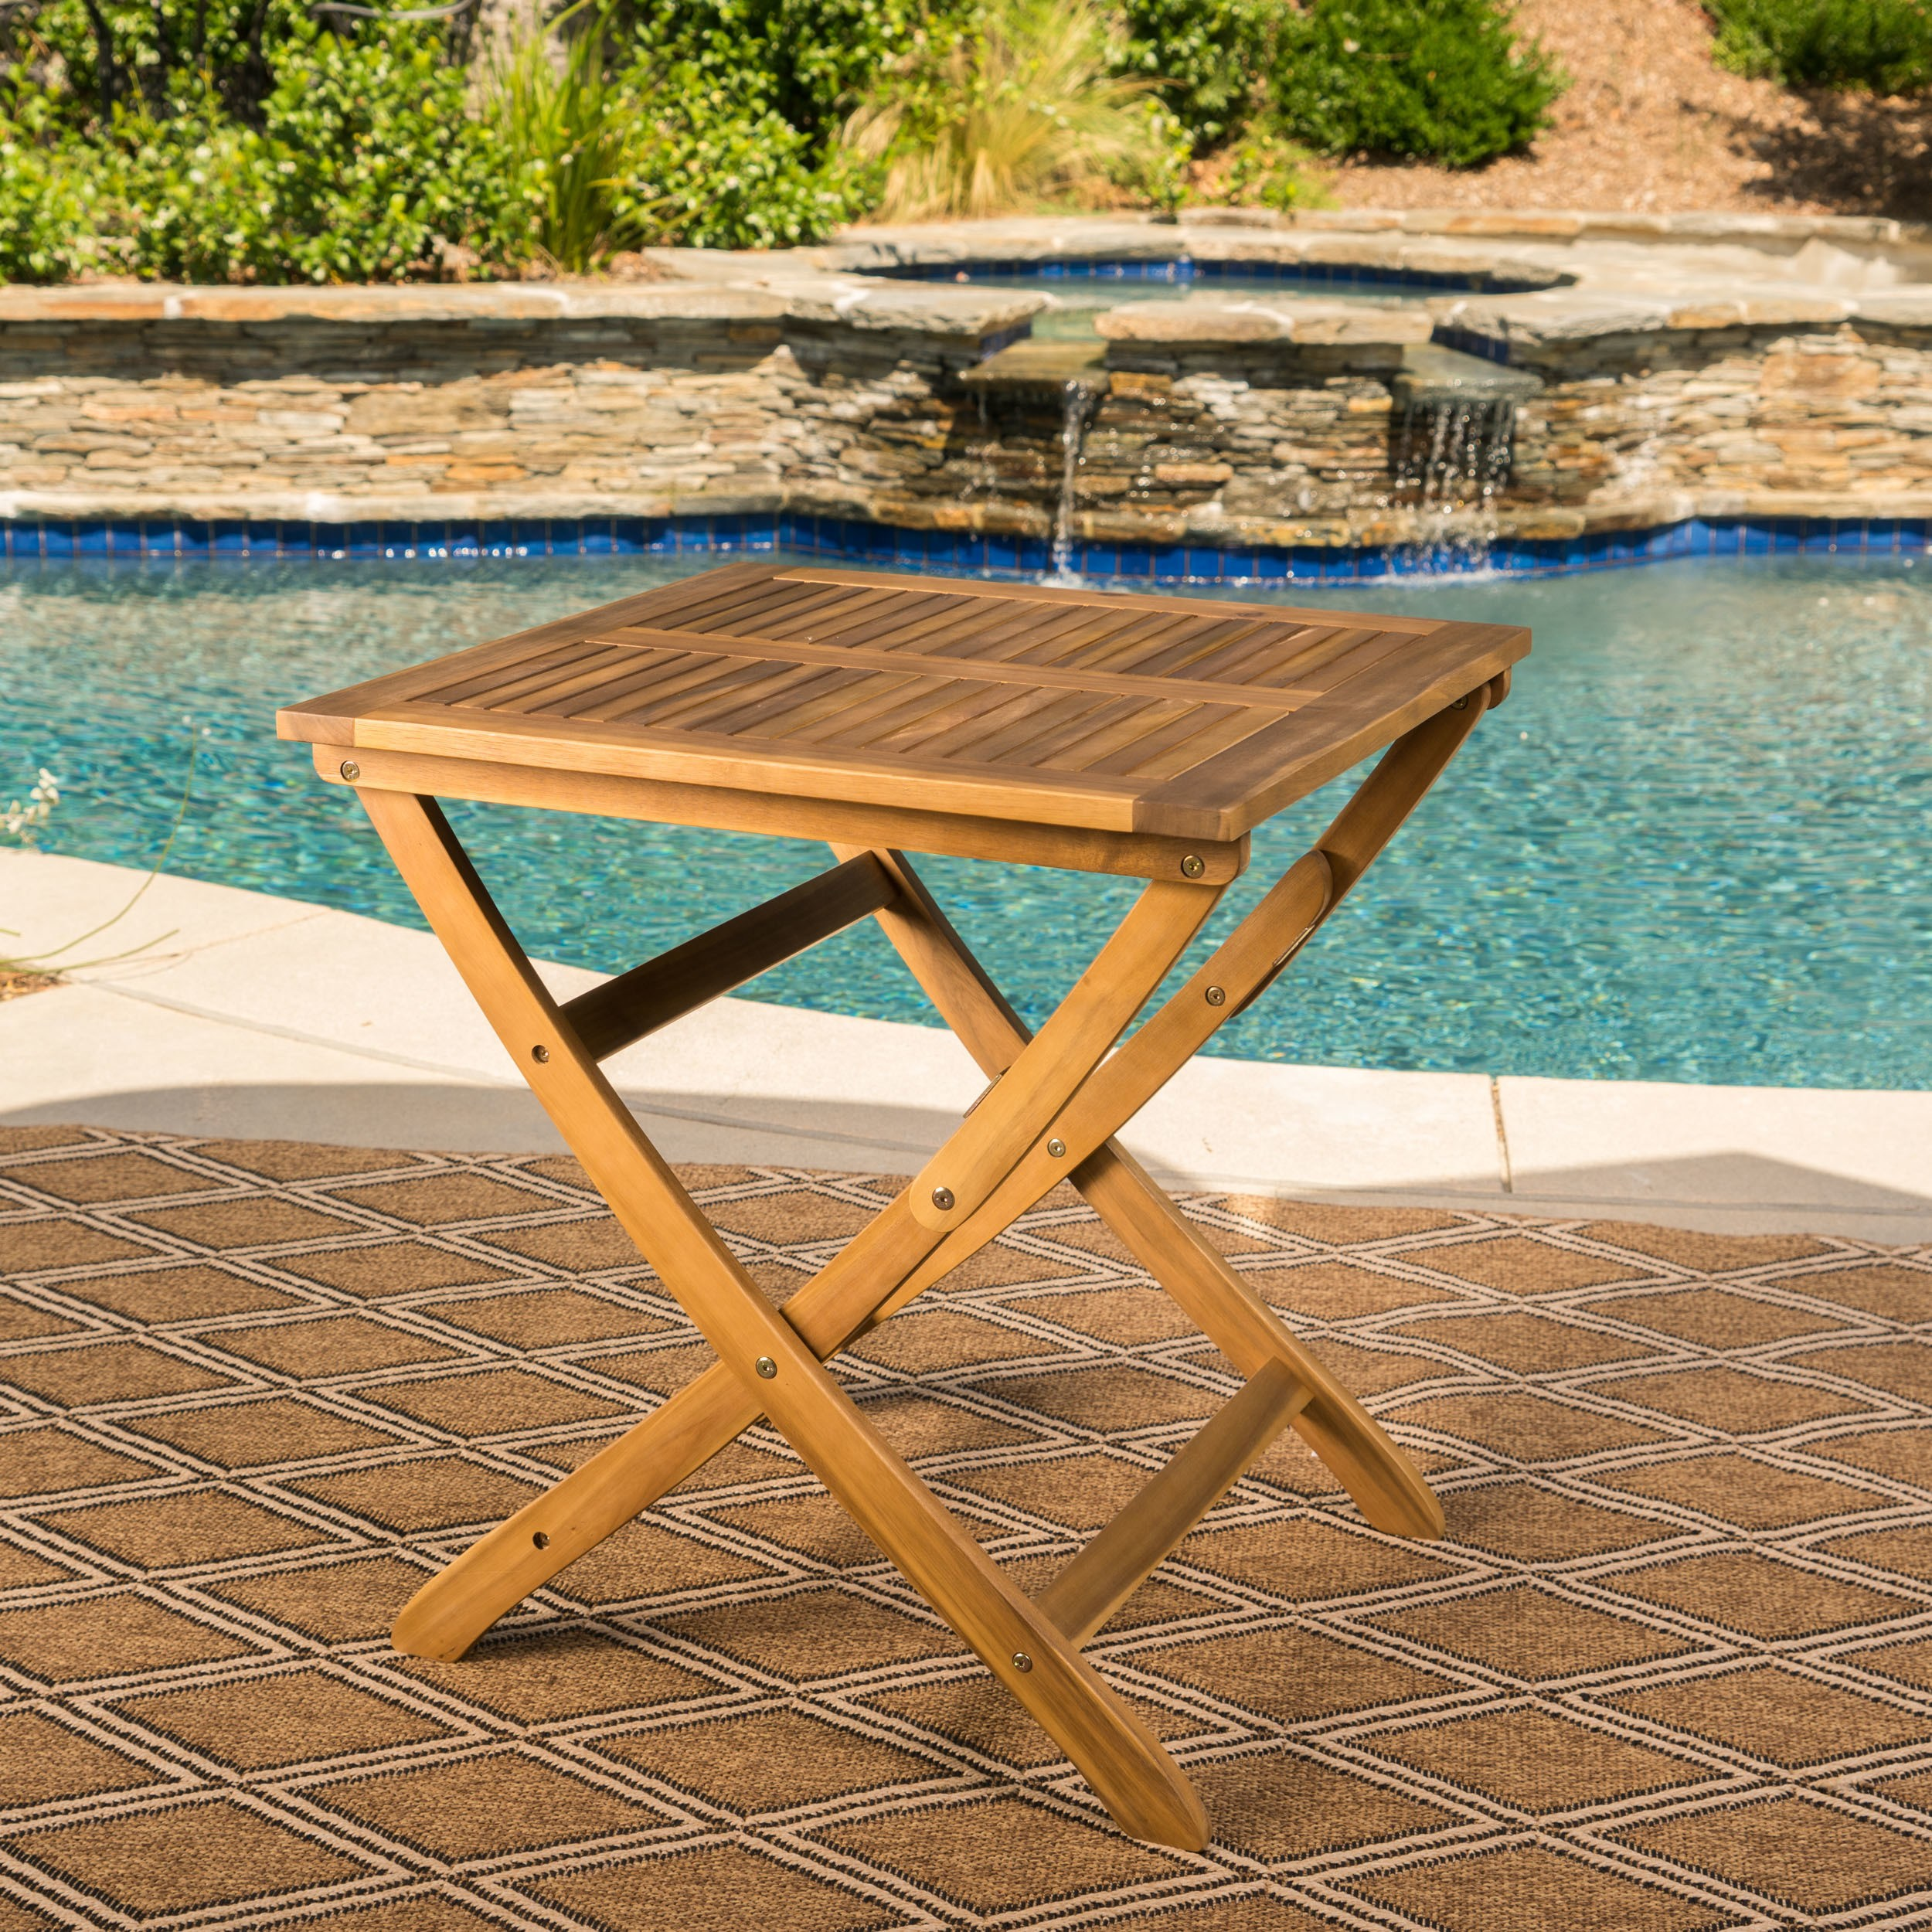 positano outdoor foldable acacia wood side table christopher knight home free shipping today living room lounge chair west elm acorn cherry dining and chairs long centerpieces